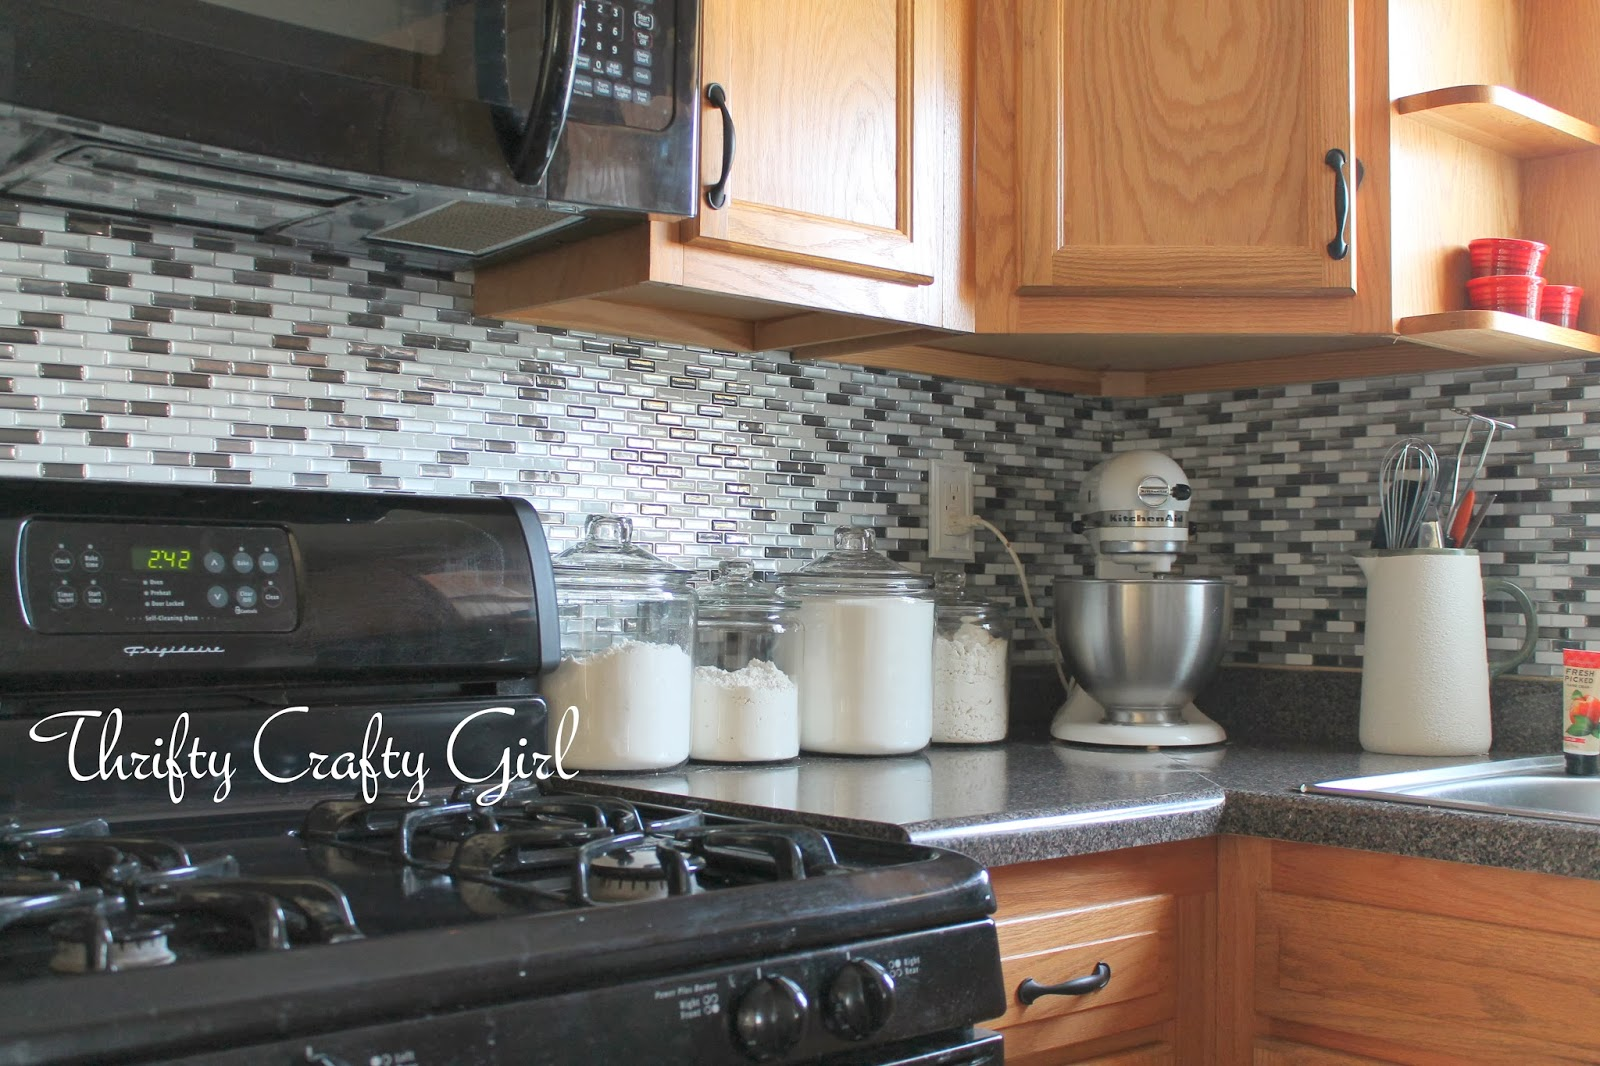 Kitchen Backsplash Easy thrifty crafty girl: easy kitchen backsplash with smart tiles